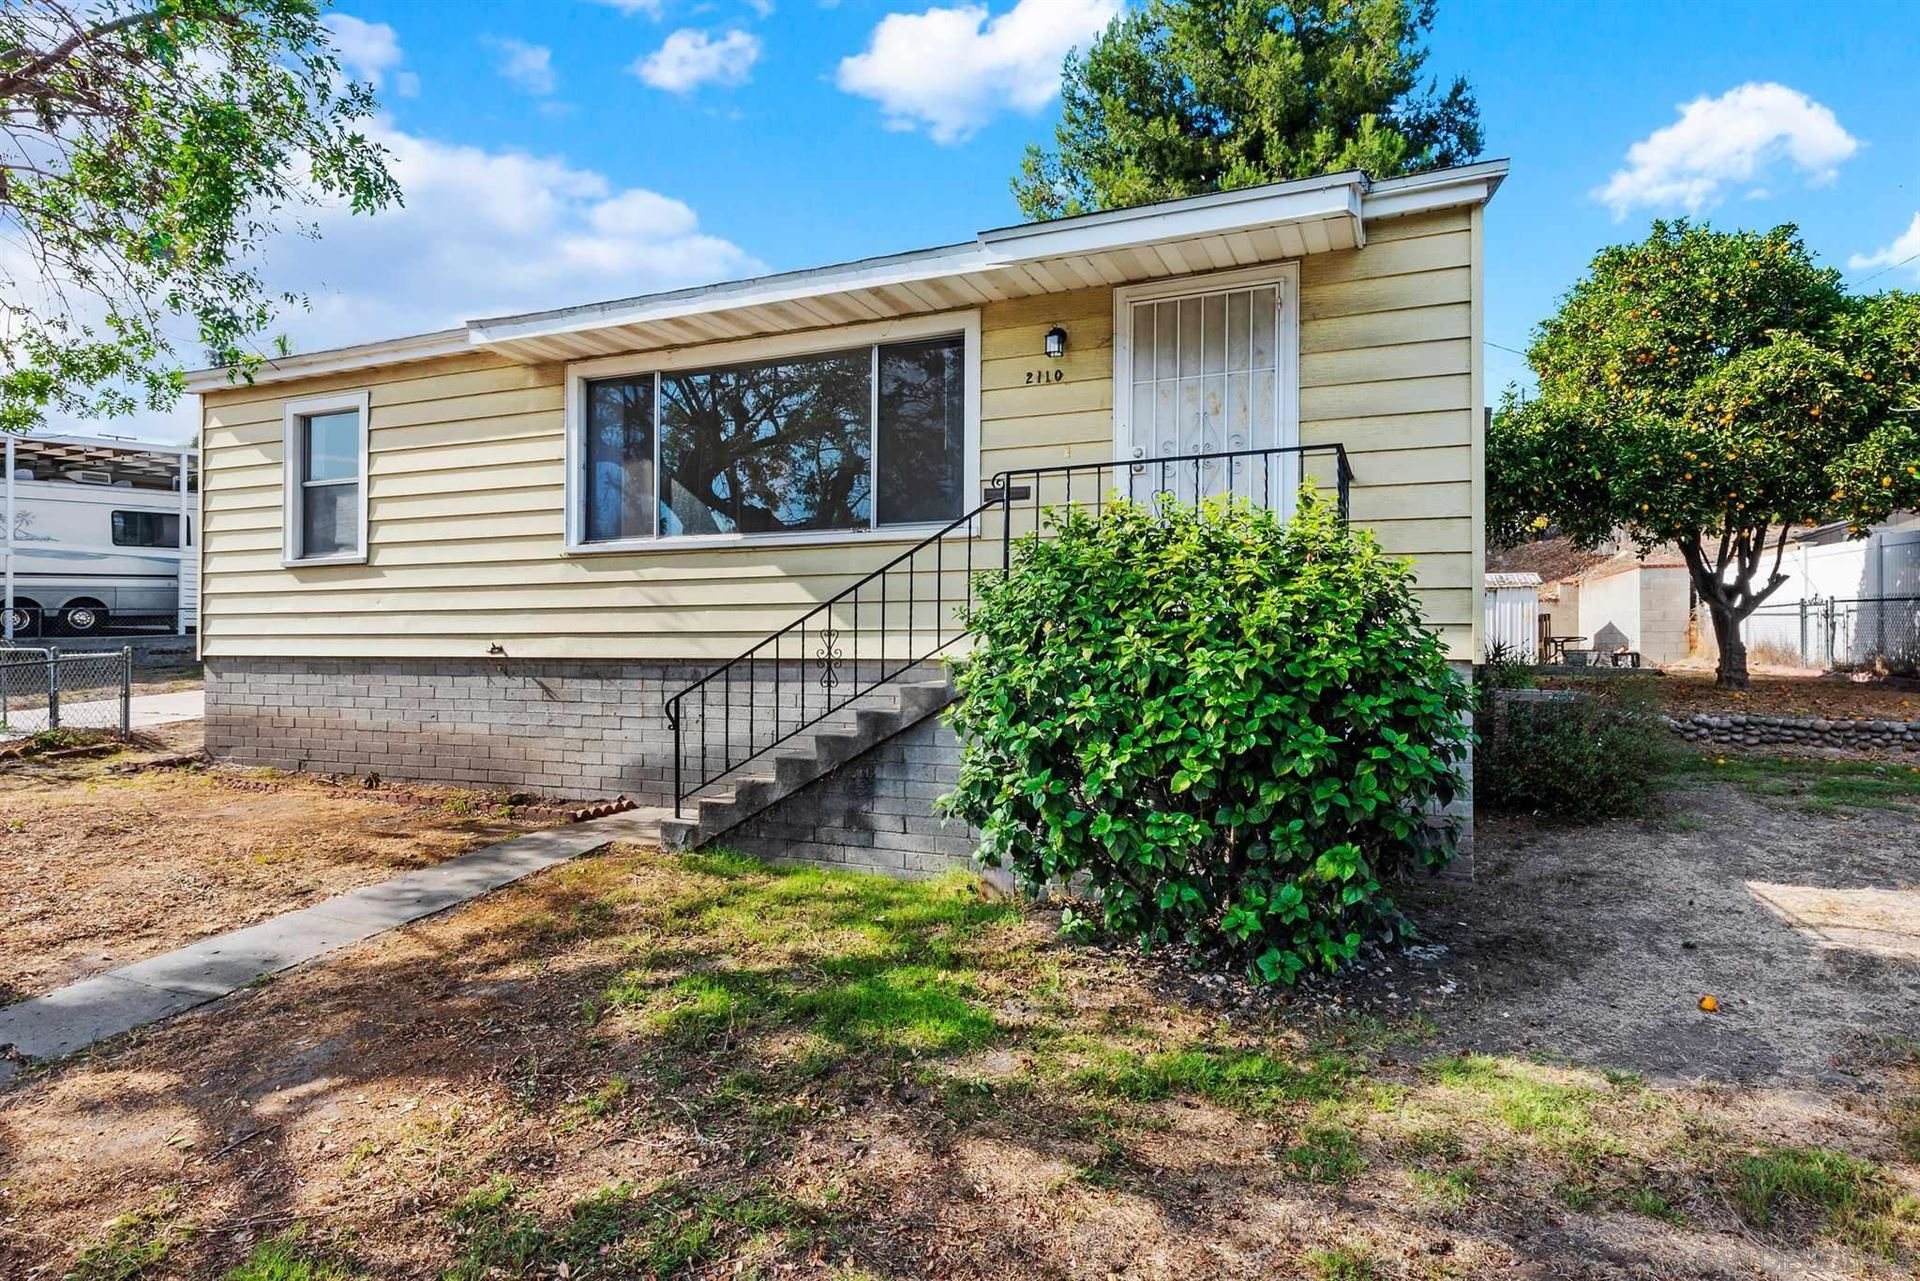 Photo of 2110 Main St, Lemon Grove, CA 91945 (MLS # 200052455)